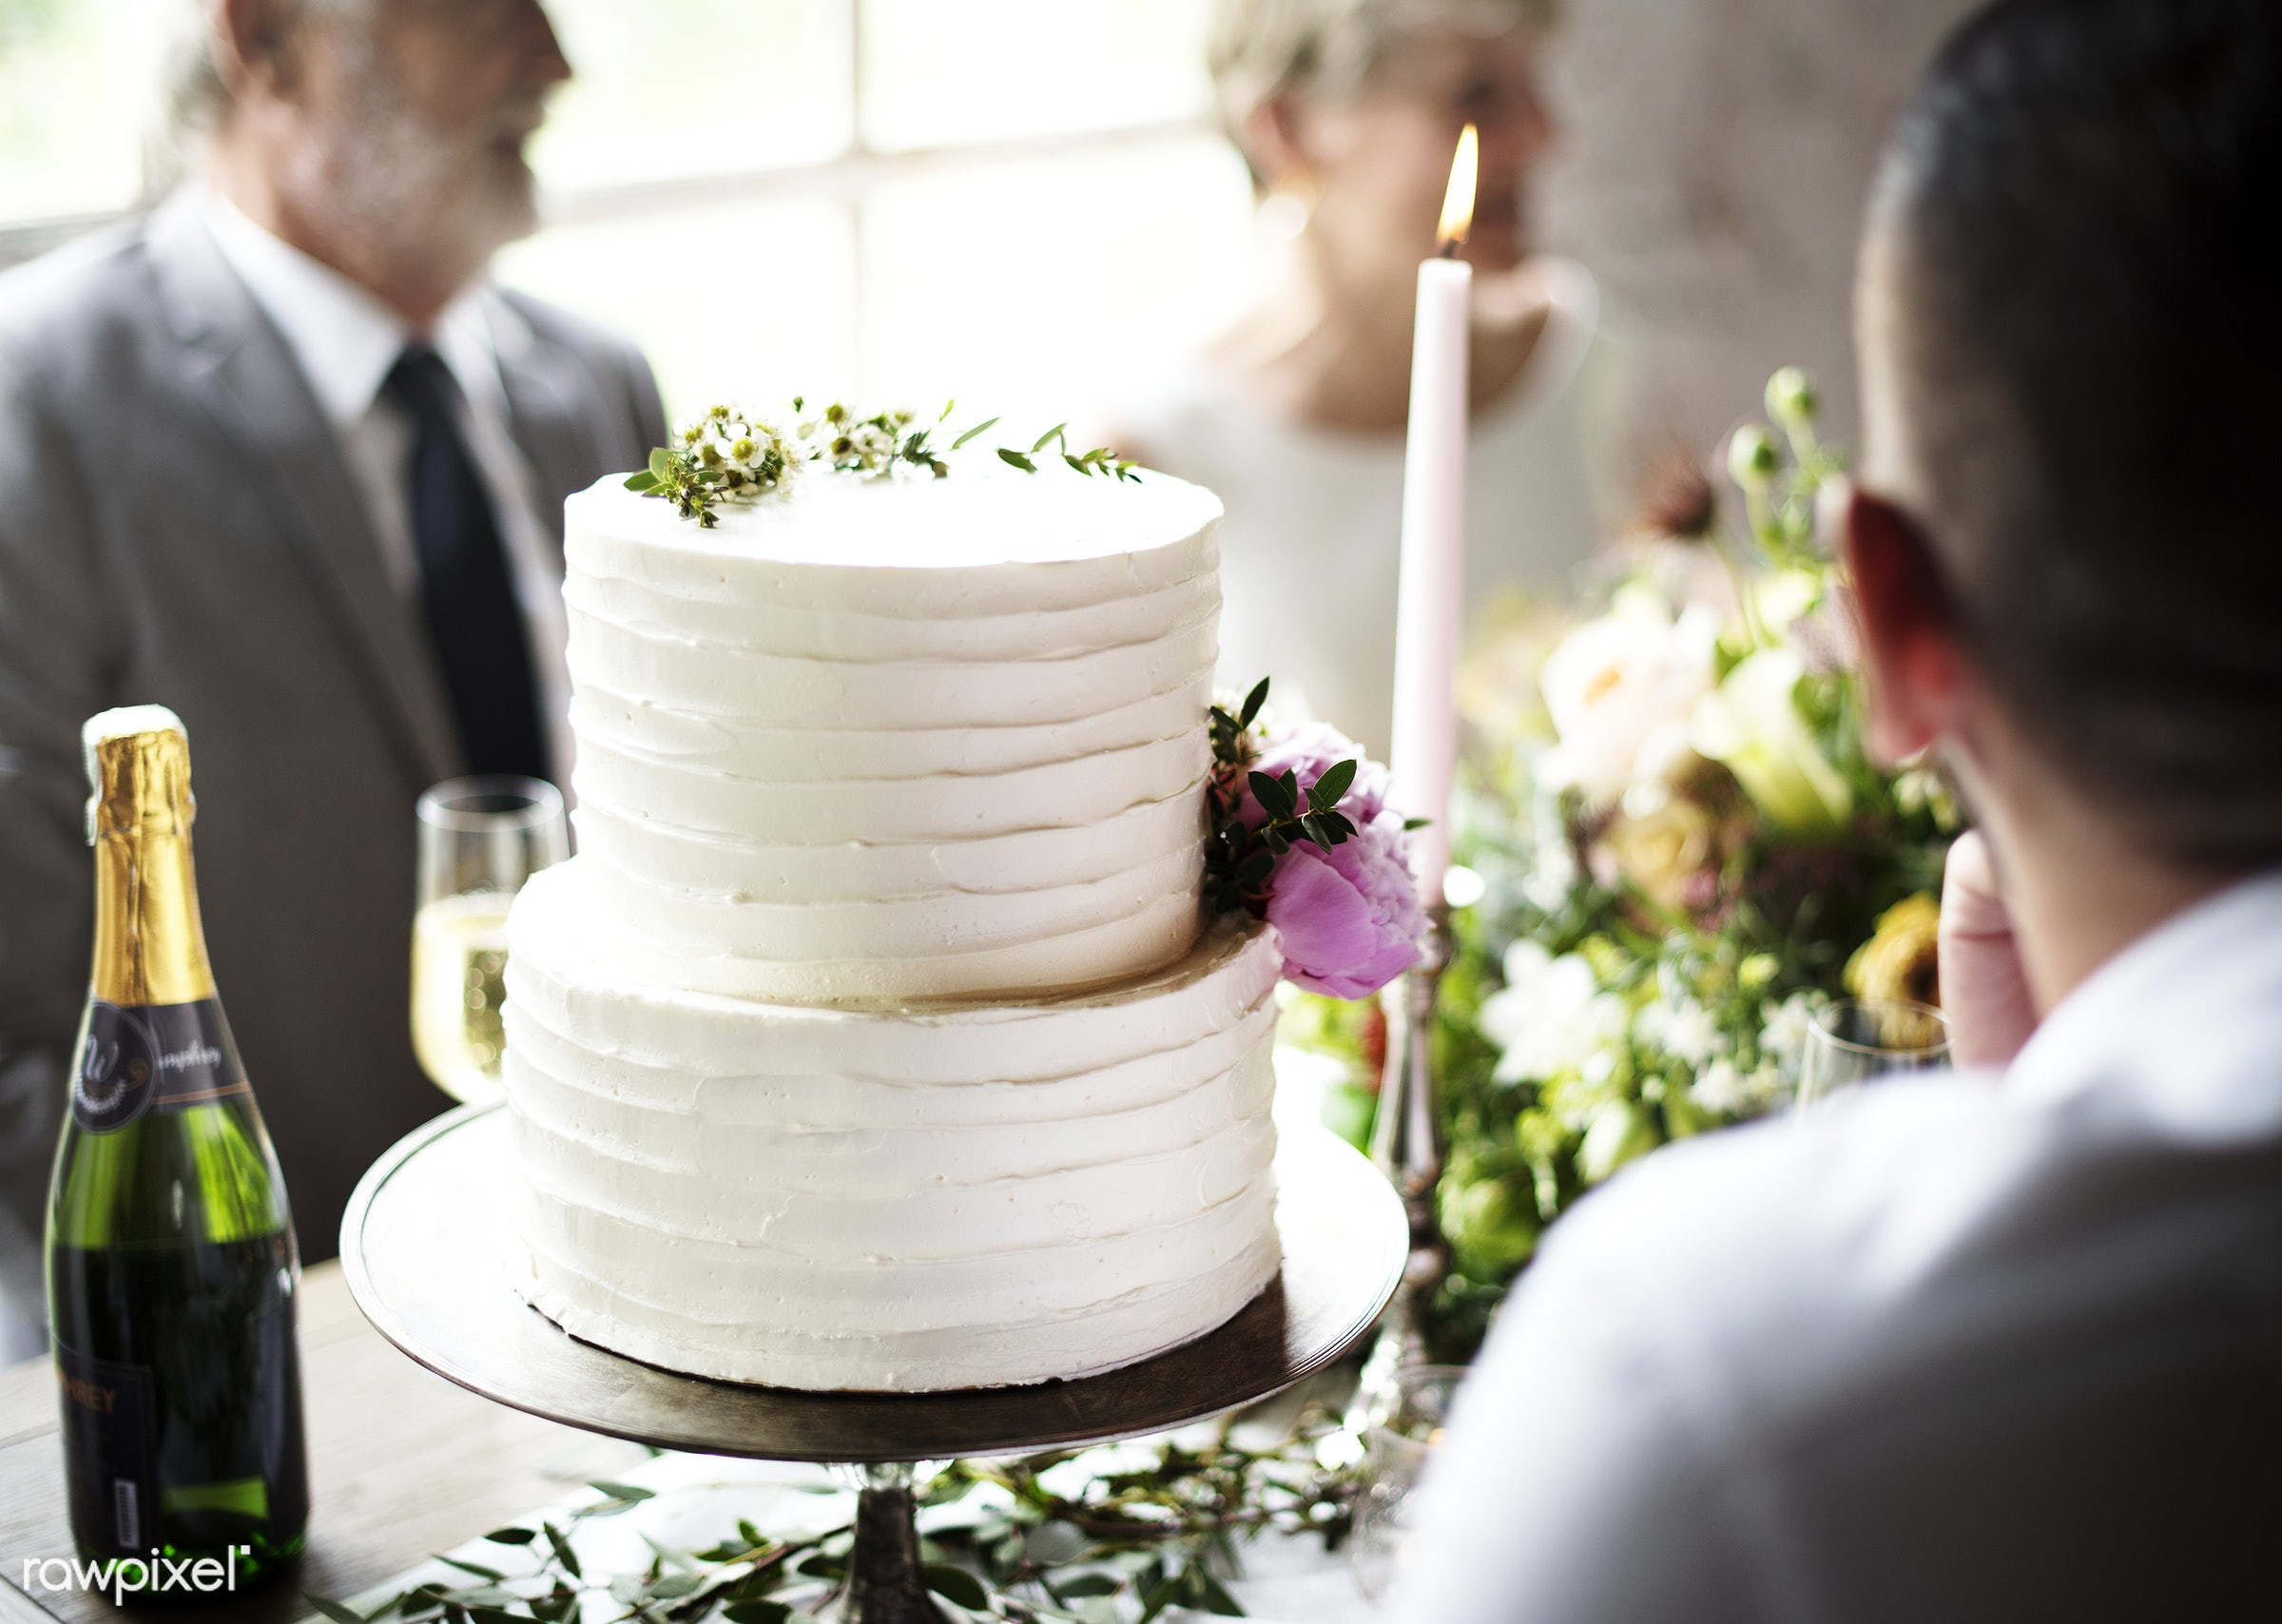 guests, occasion, people, together, gather, event, friendship, banquet, flowers, closeup, cake, diversity, champagne,...